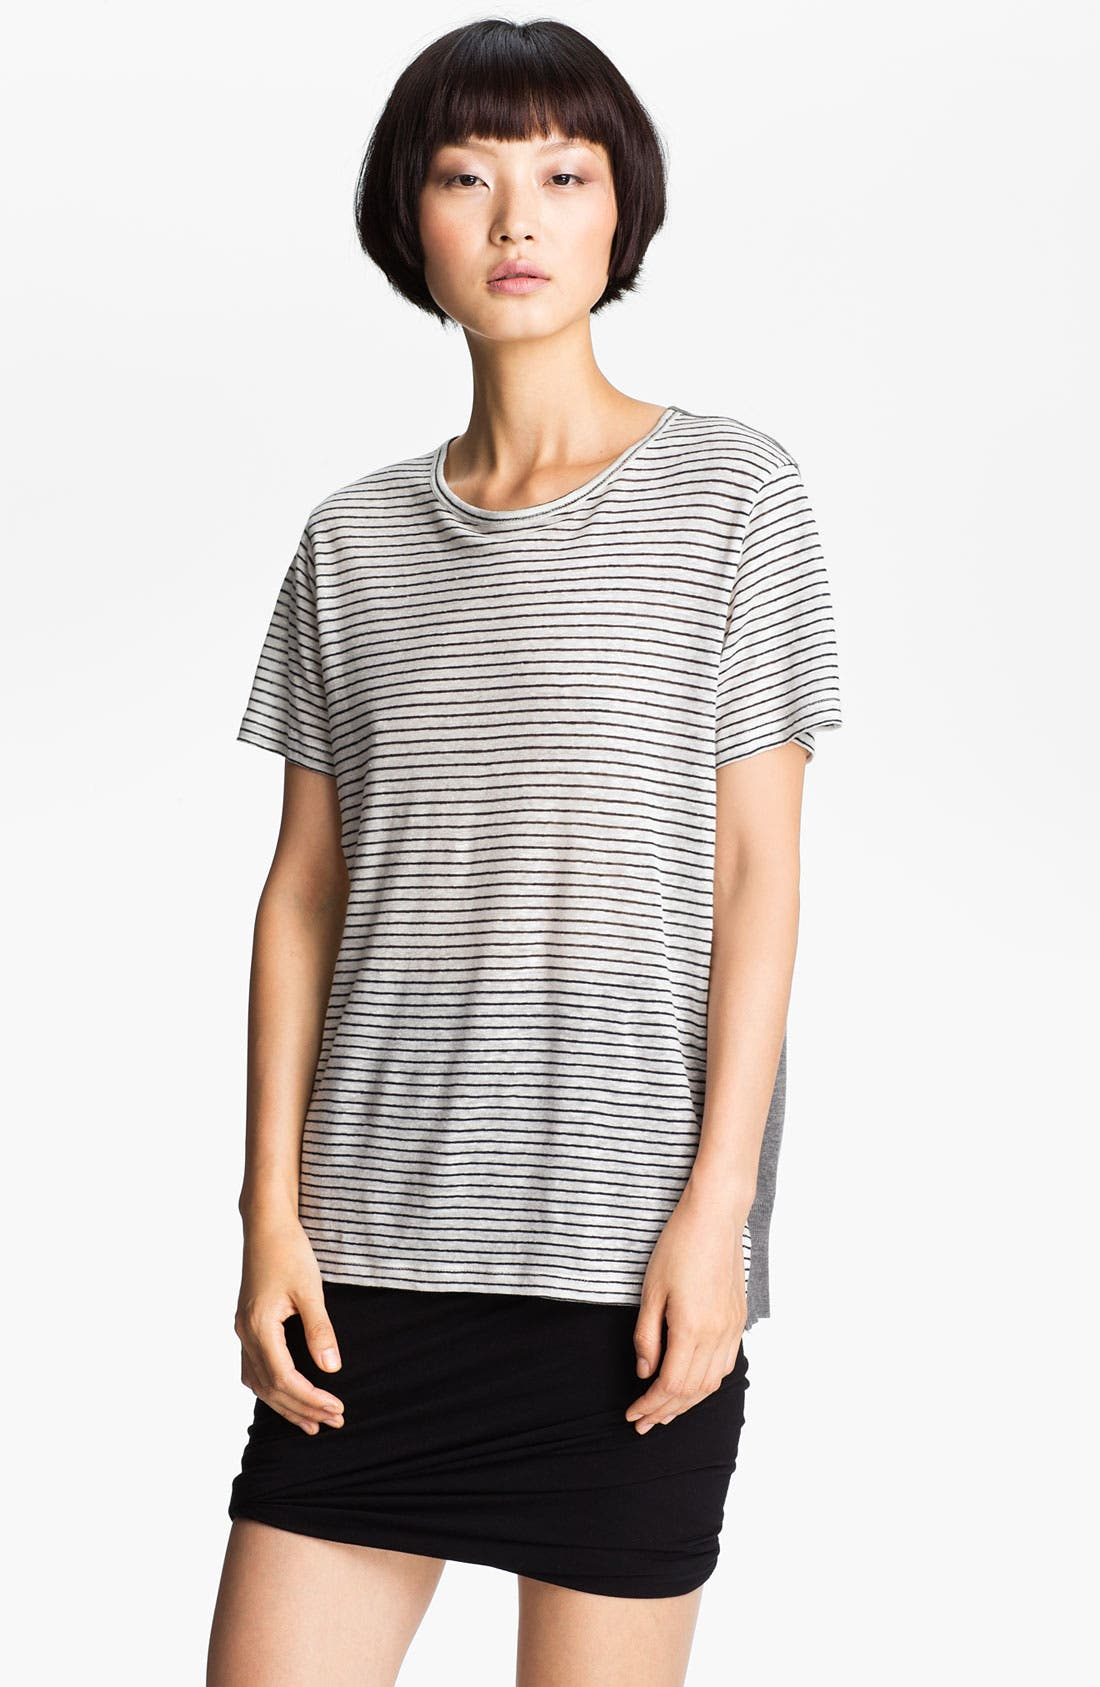 Alternate Image 1 Selected - T by Alexander Wang Stripe & Solid Linen Tee